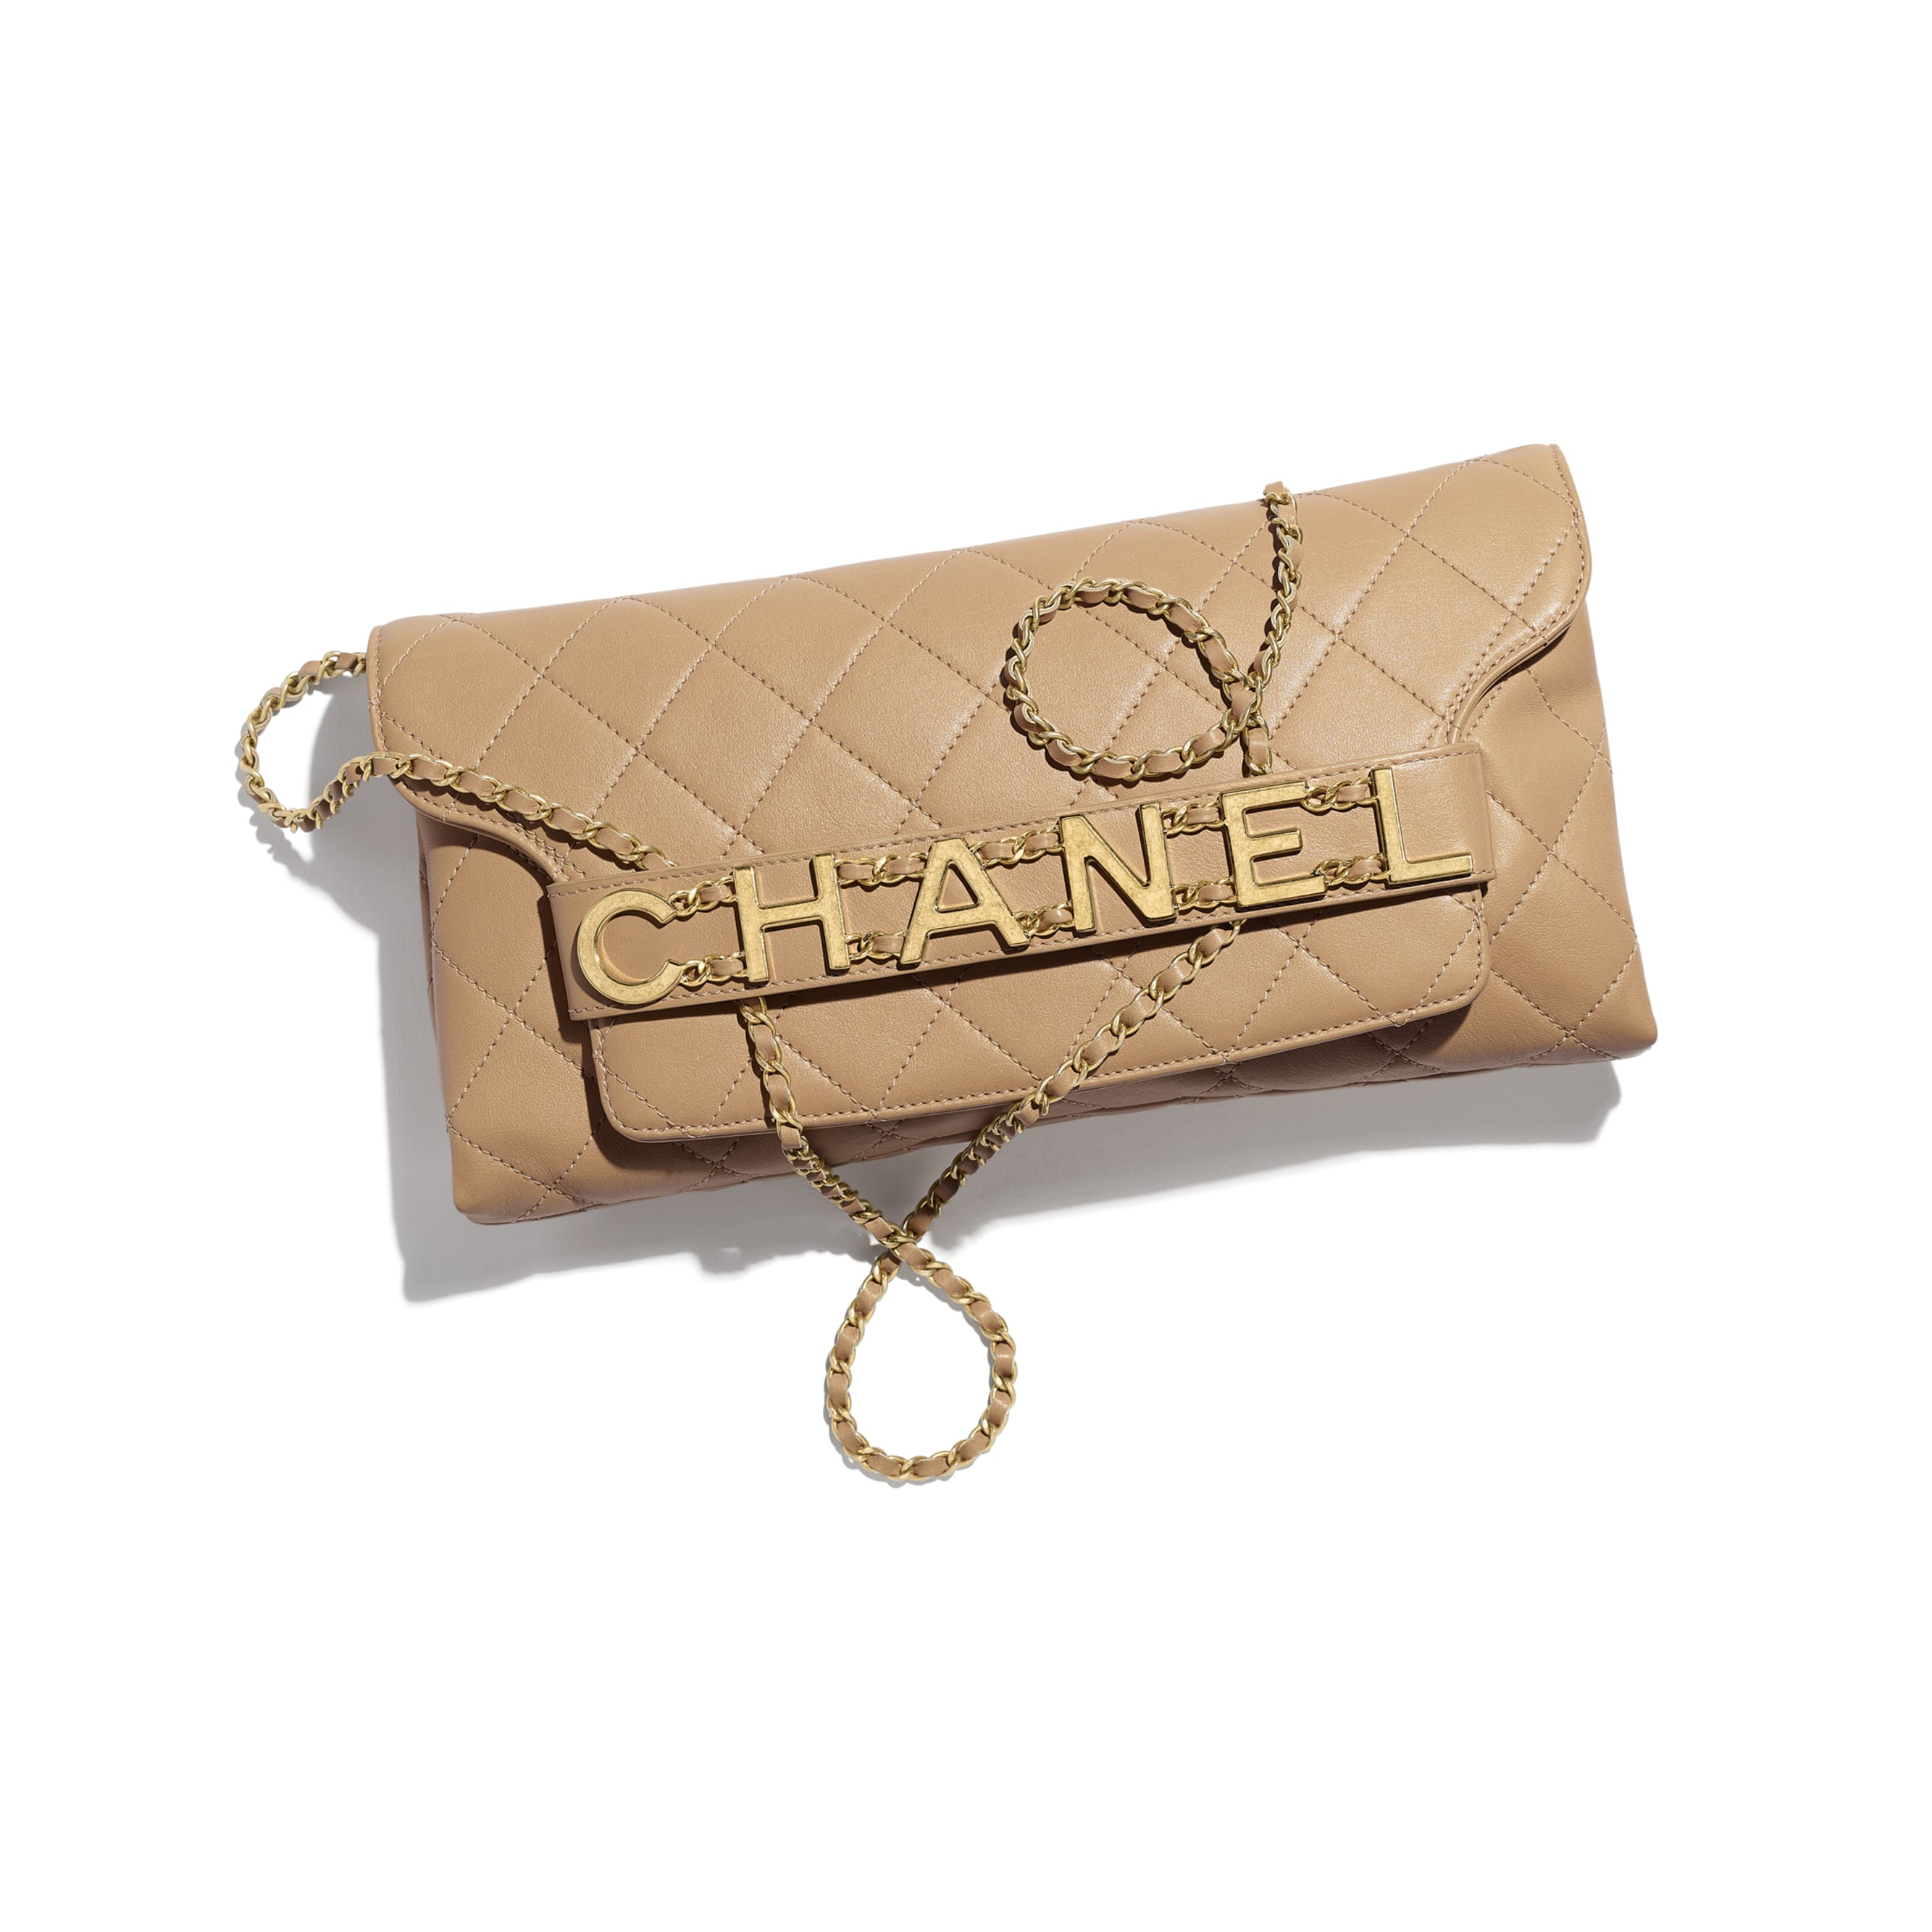 Clutch - Beige - Calfskin & Gold-Tone Metal - CHANEL - Extra view - see standard sized version